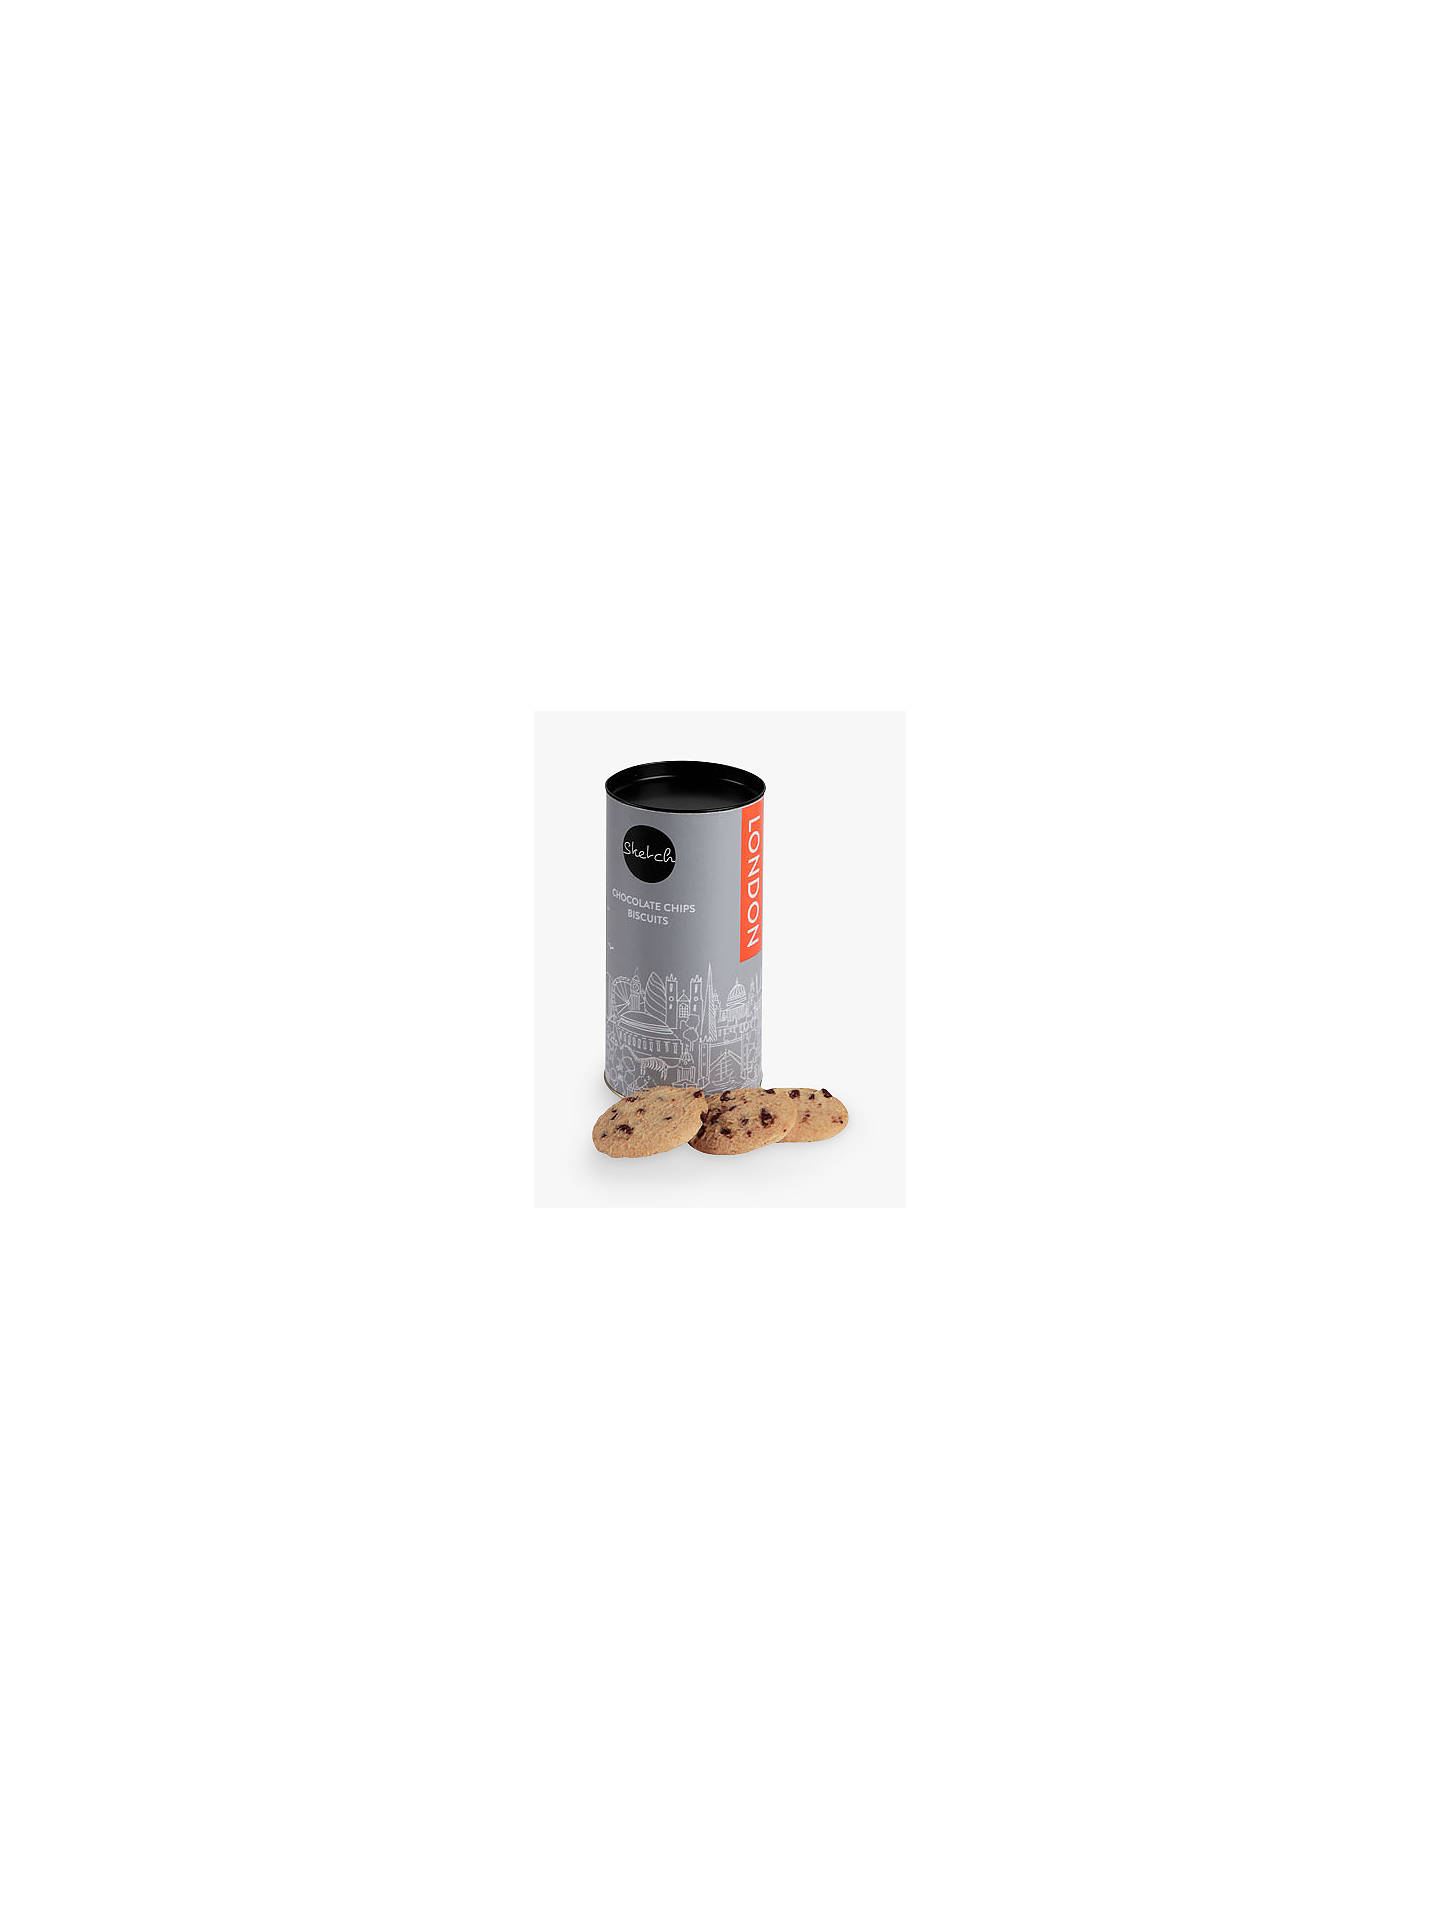 Buy Sketch London Choc Chip Biscuits, 150g Online at johnlewis.com